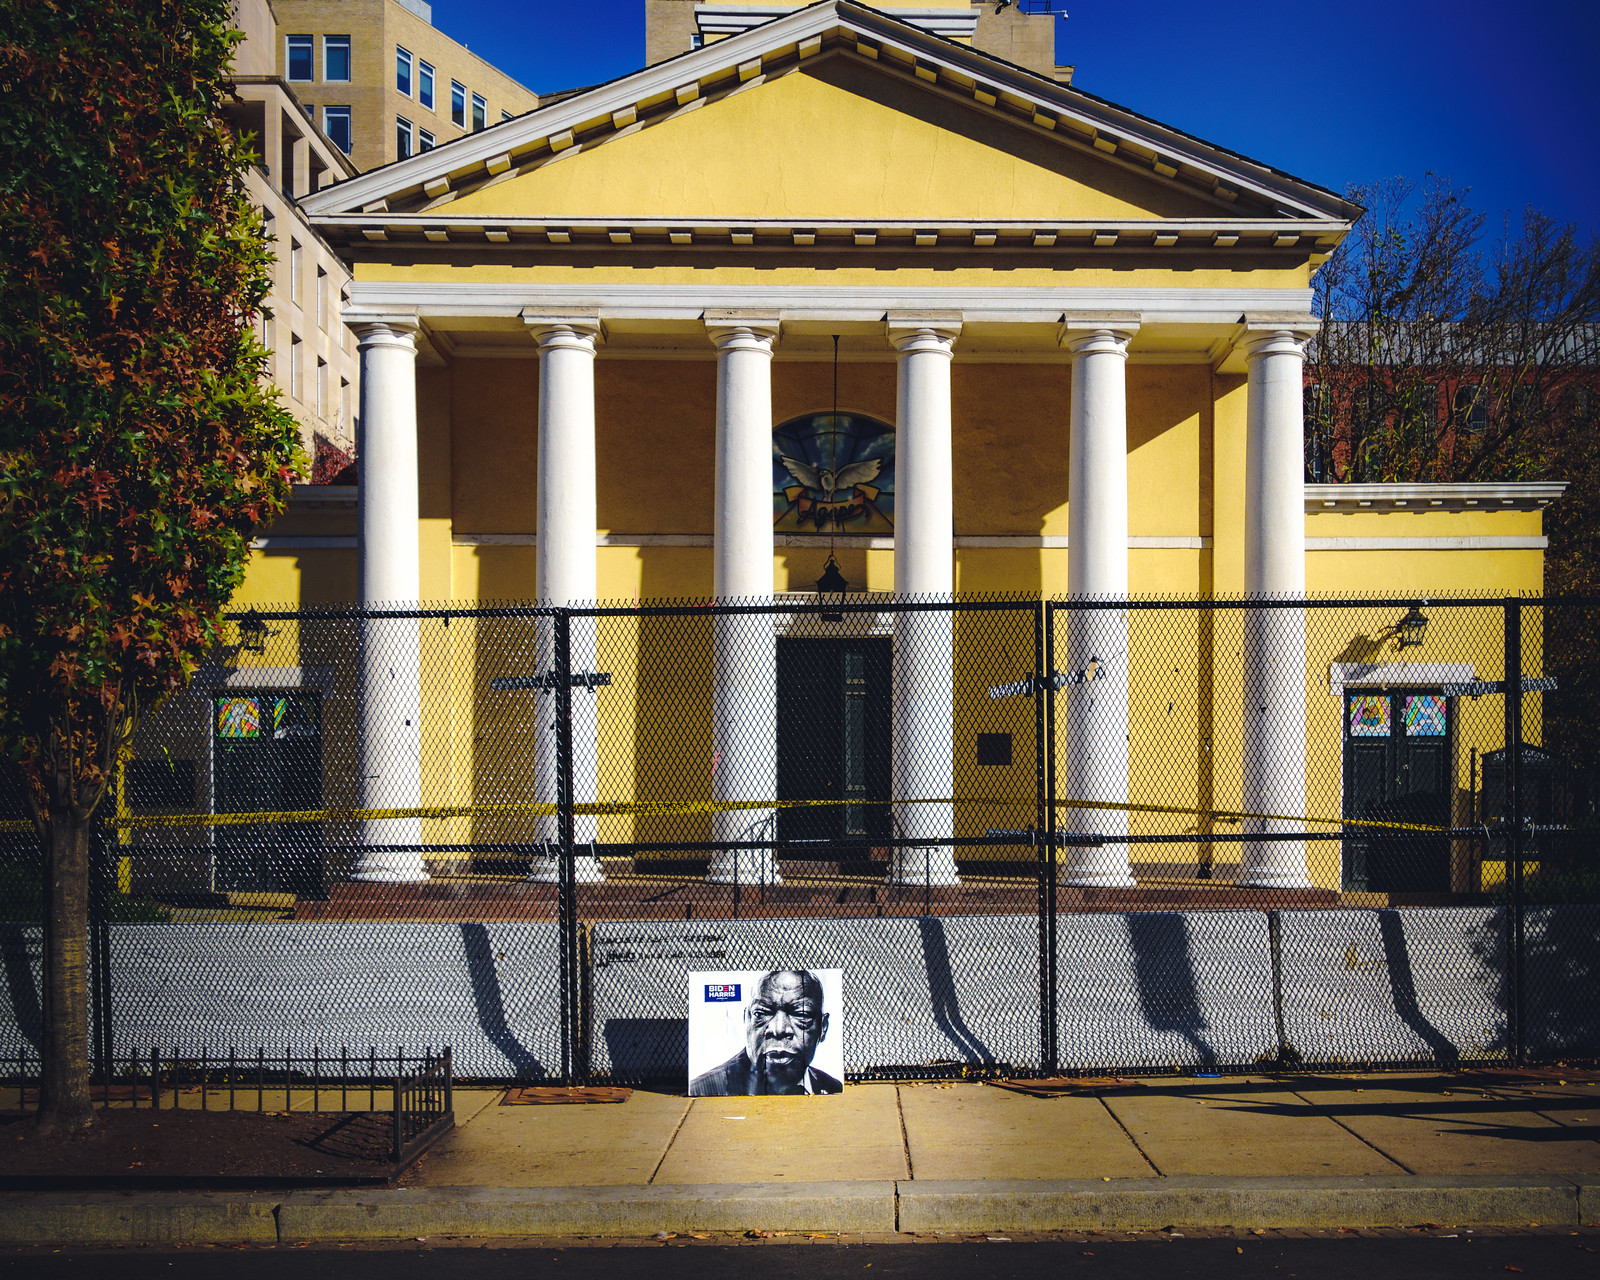 Thanks for publishing my photo, in fencing Comes Down Around Lafayette Park, St. John's Church | DCist